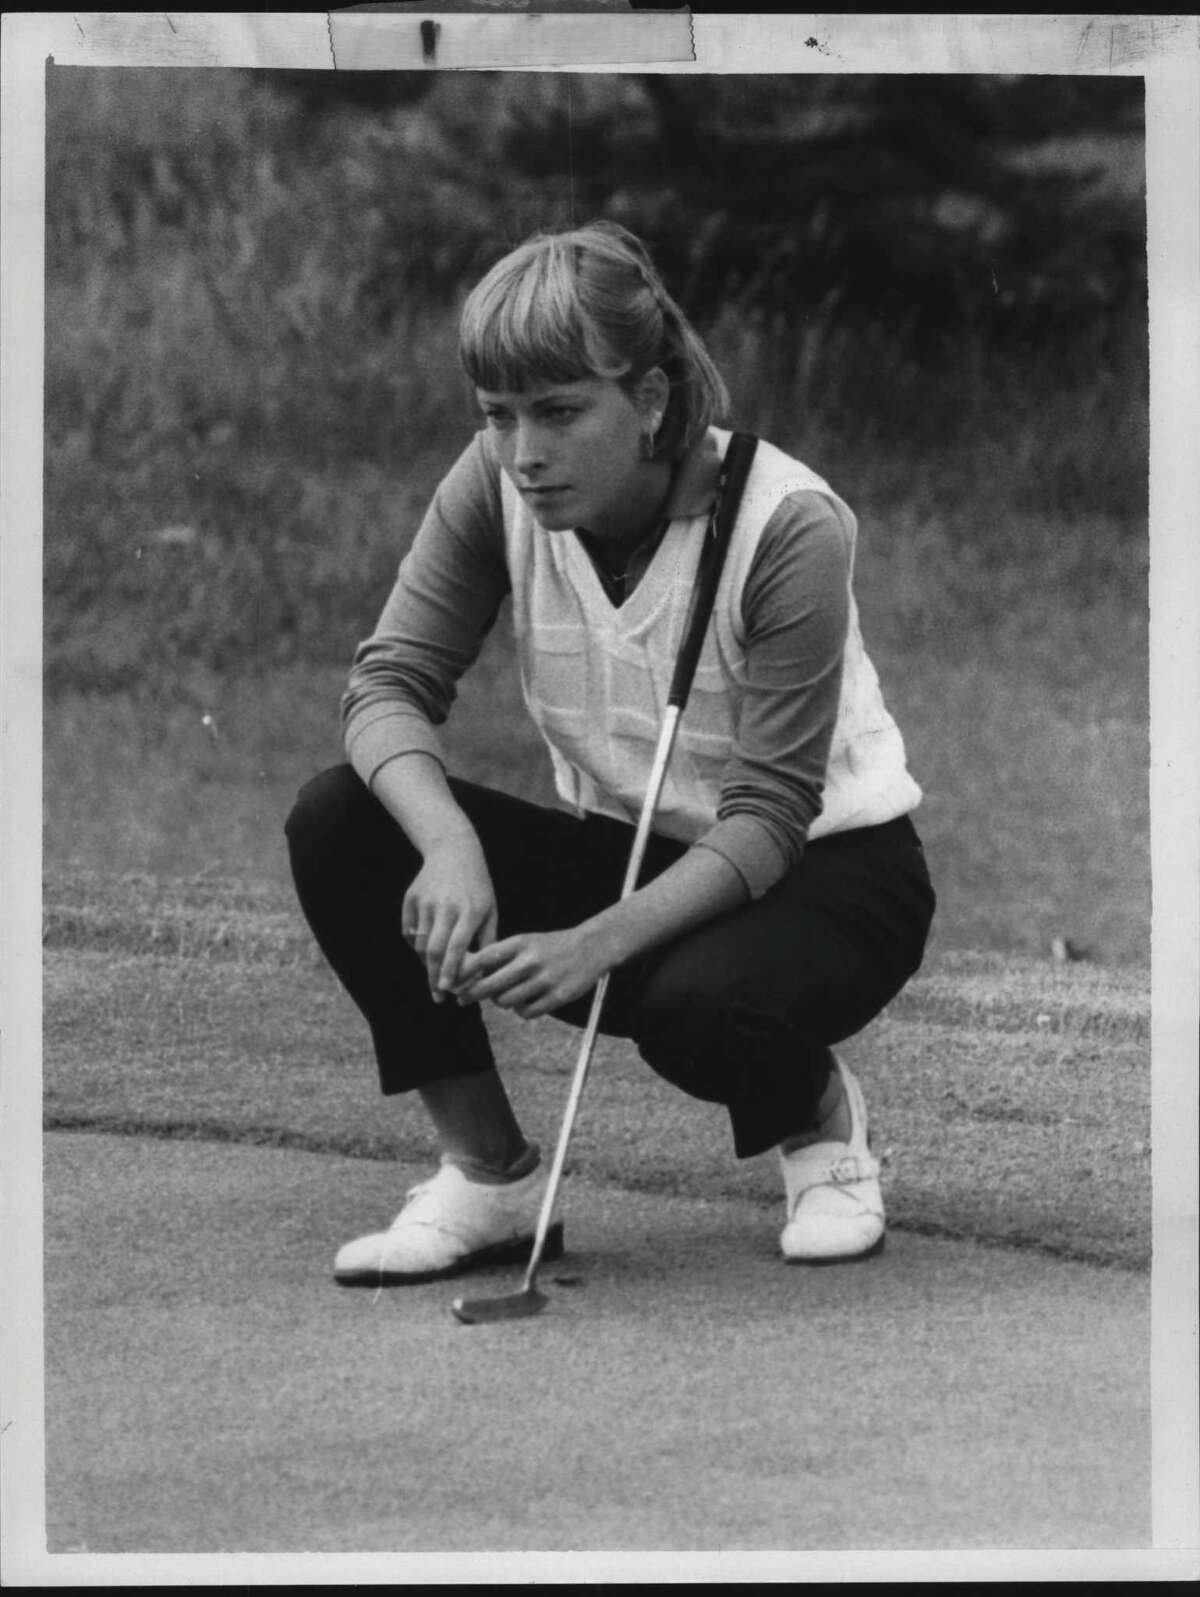 LPGA Golfer Dottie Pepper lines up a shot at Ballston Spa Country Club in New York. June 26, 1985. Now a broadcaster, Pepper, of Saratoga Springs, will appear on